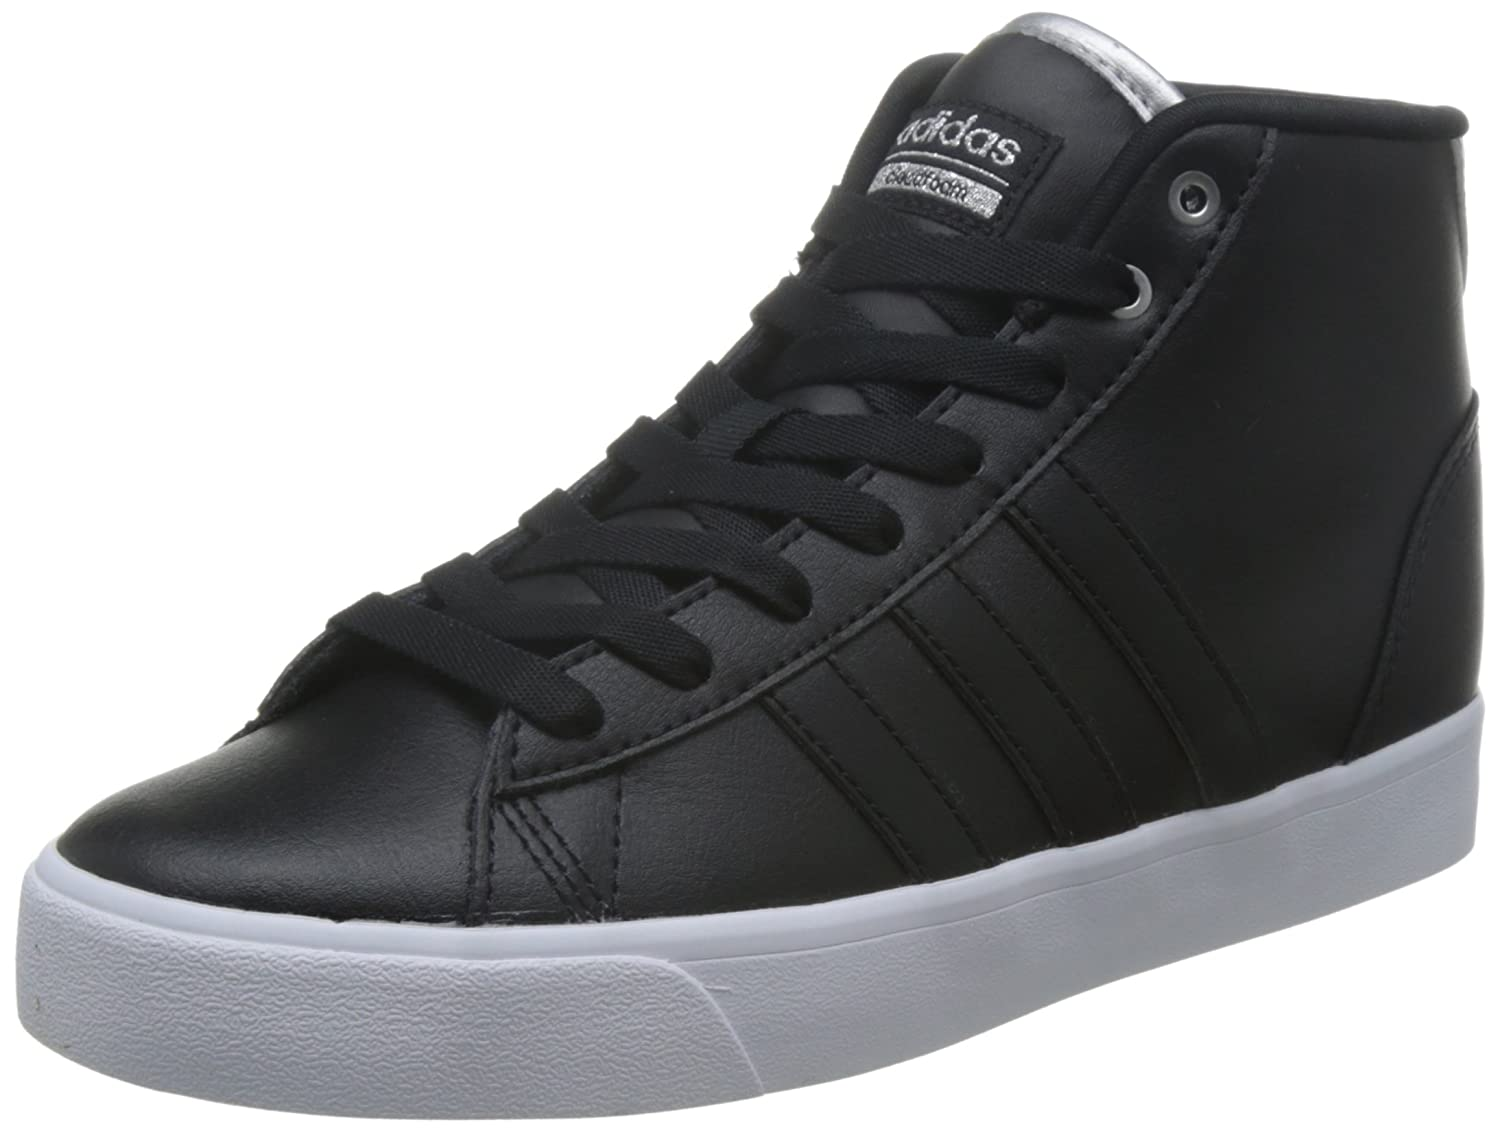 new style 5737f 849e8 adidas Cloudfoam Daily QT Mid - AW4012